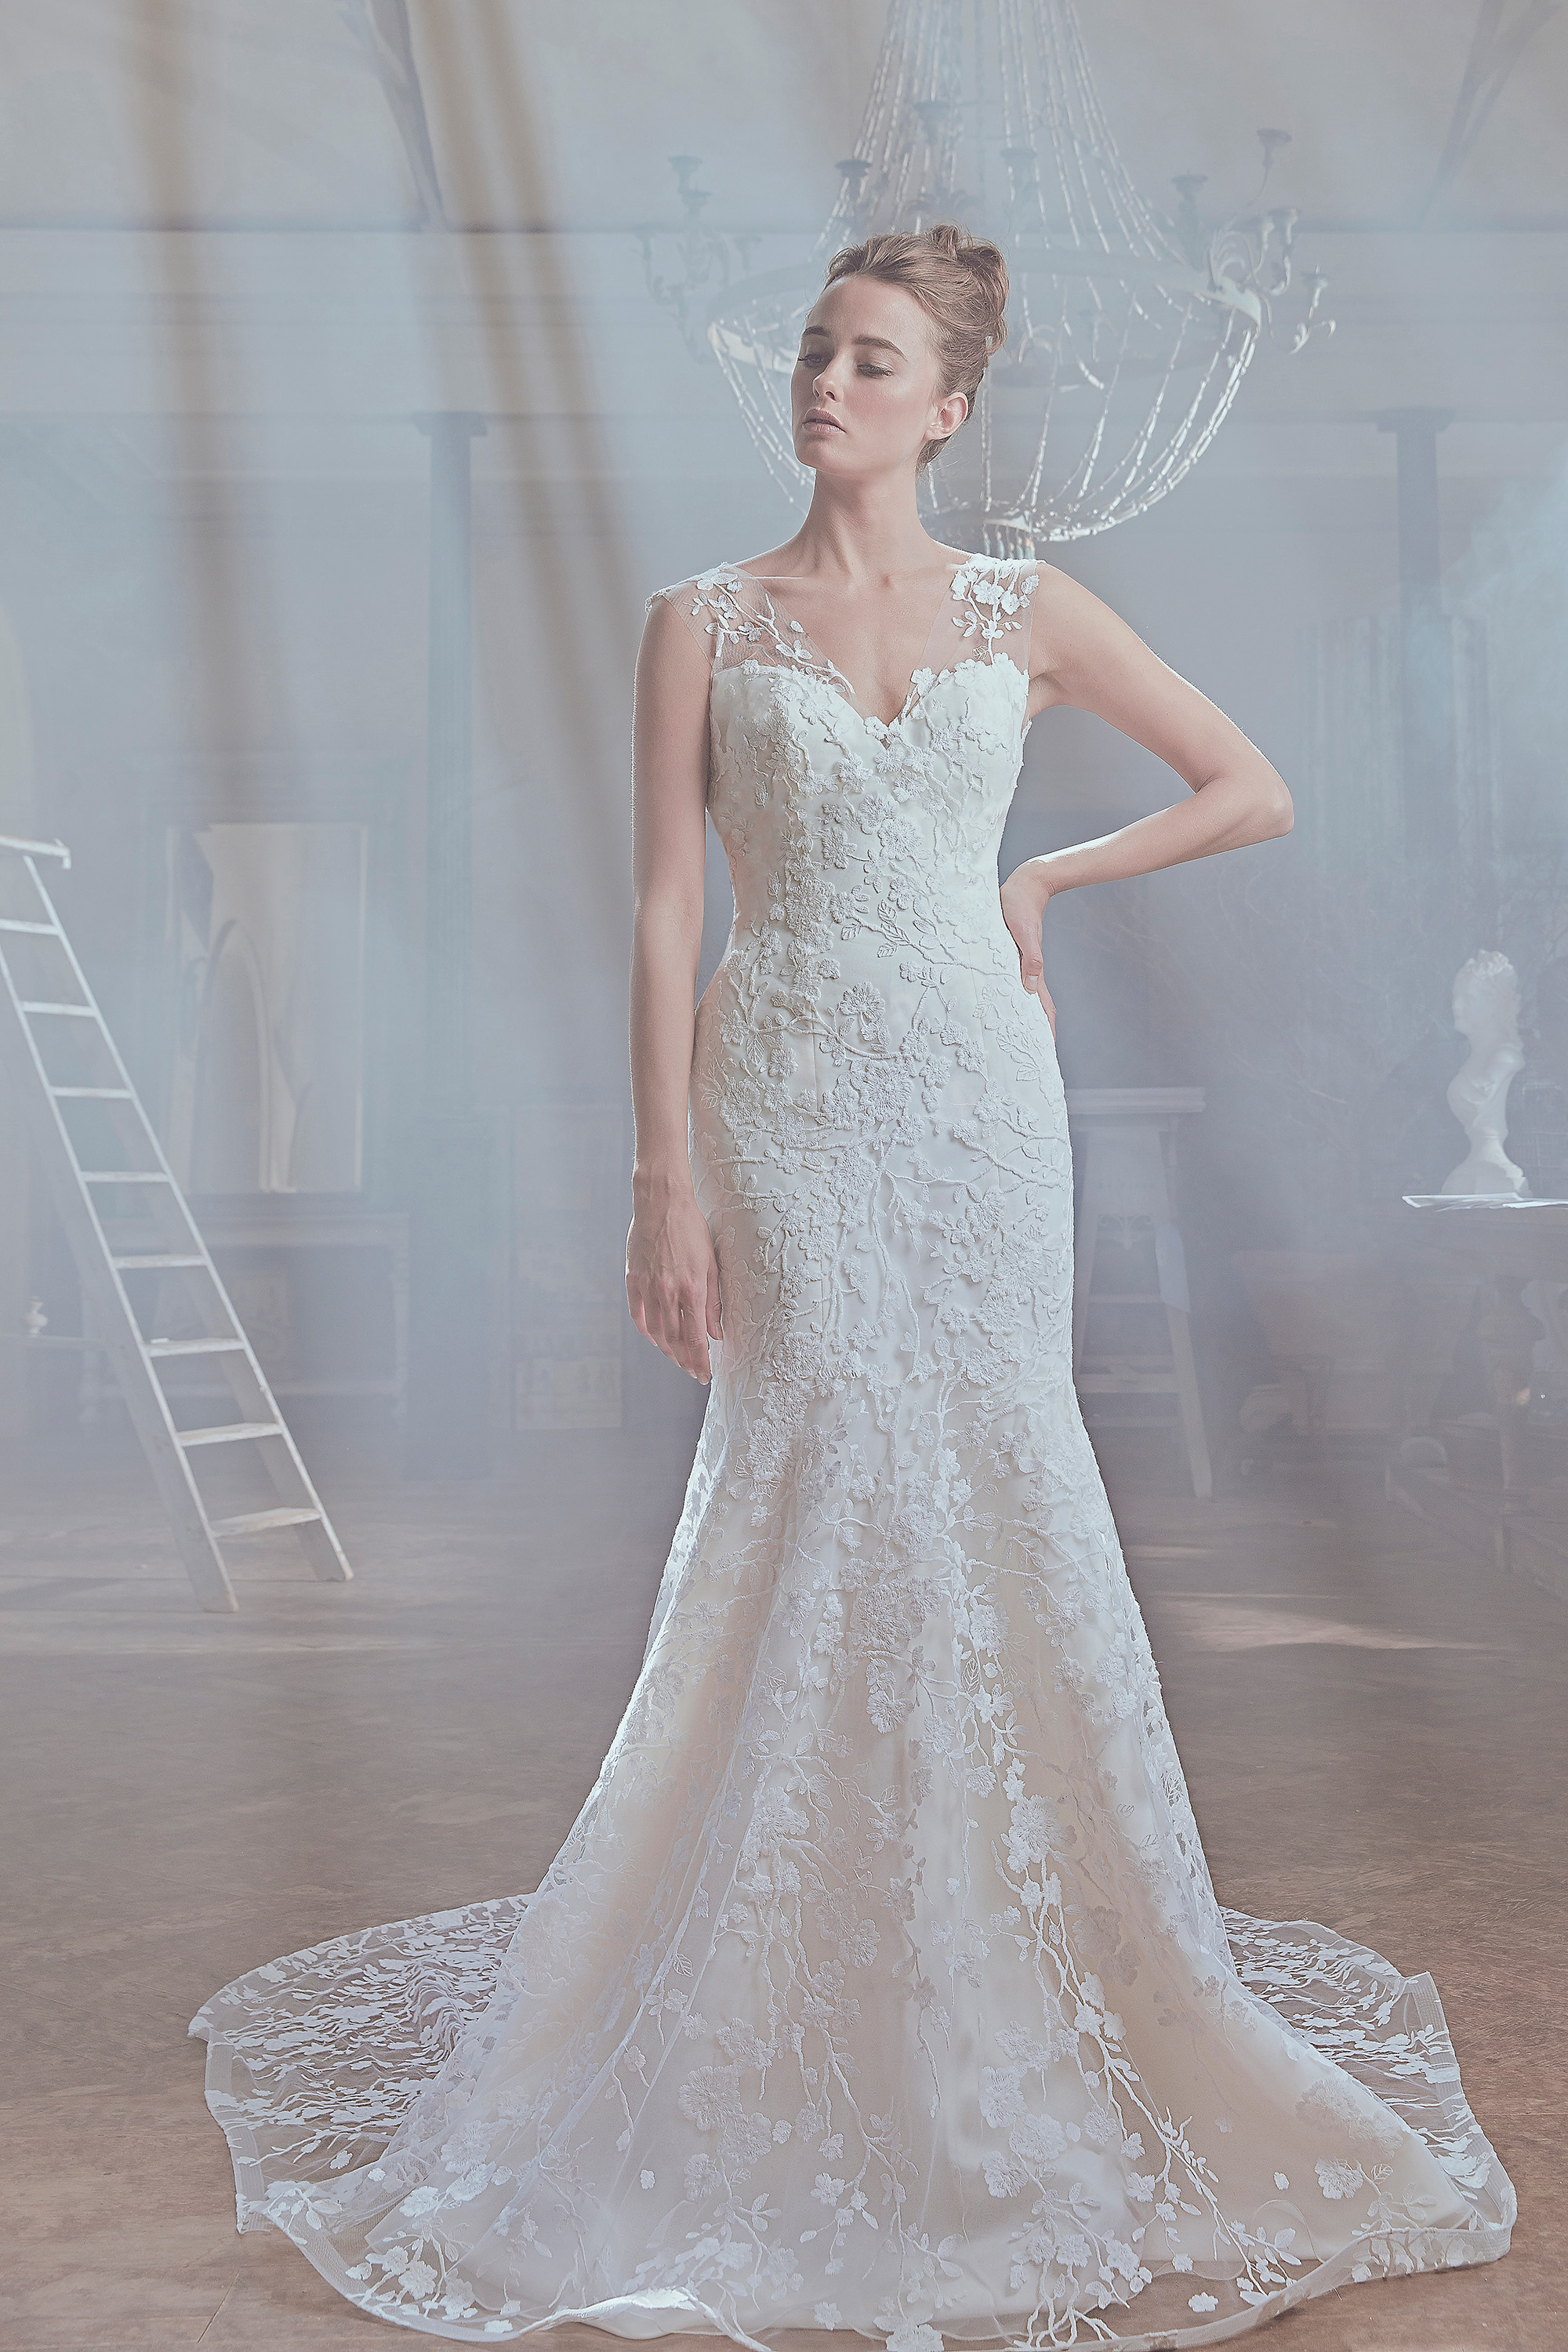 sareh nouri wedding dress spring 2019 floral lace sheer shoulder mermaid